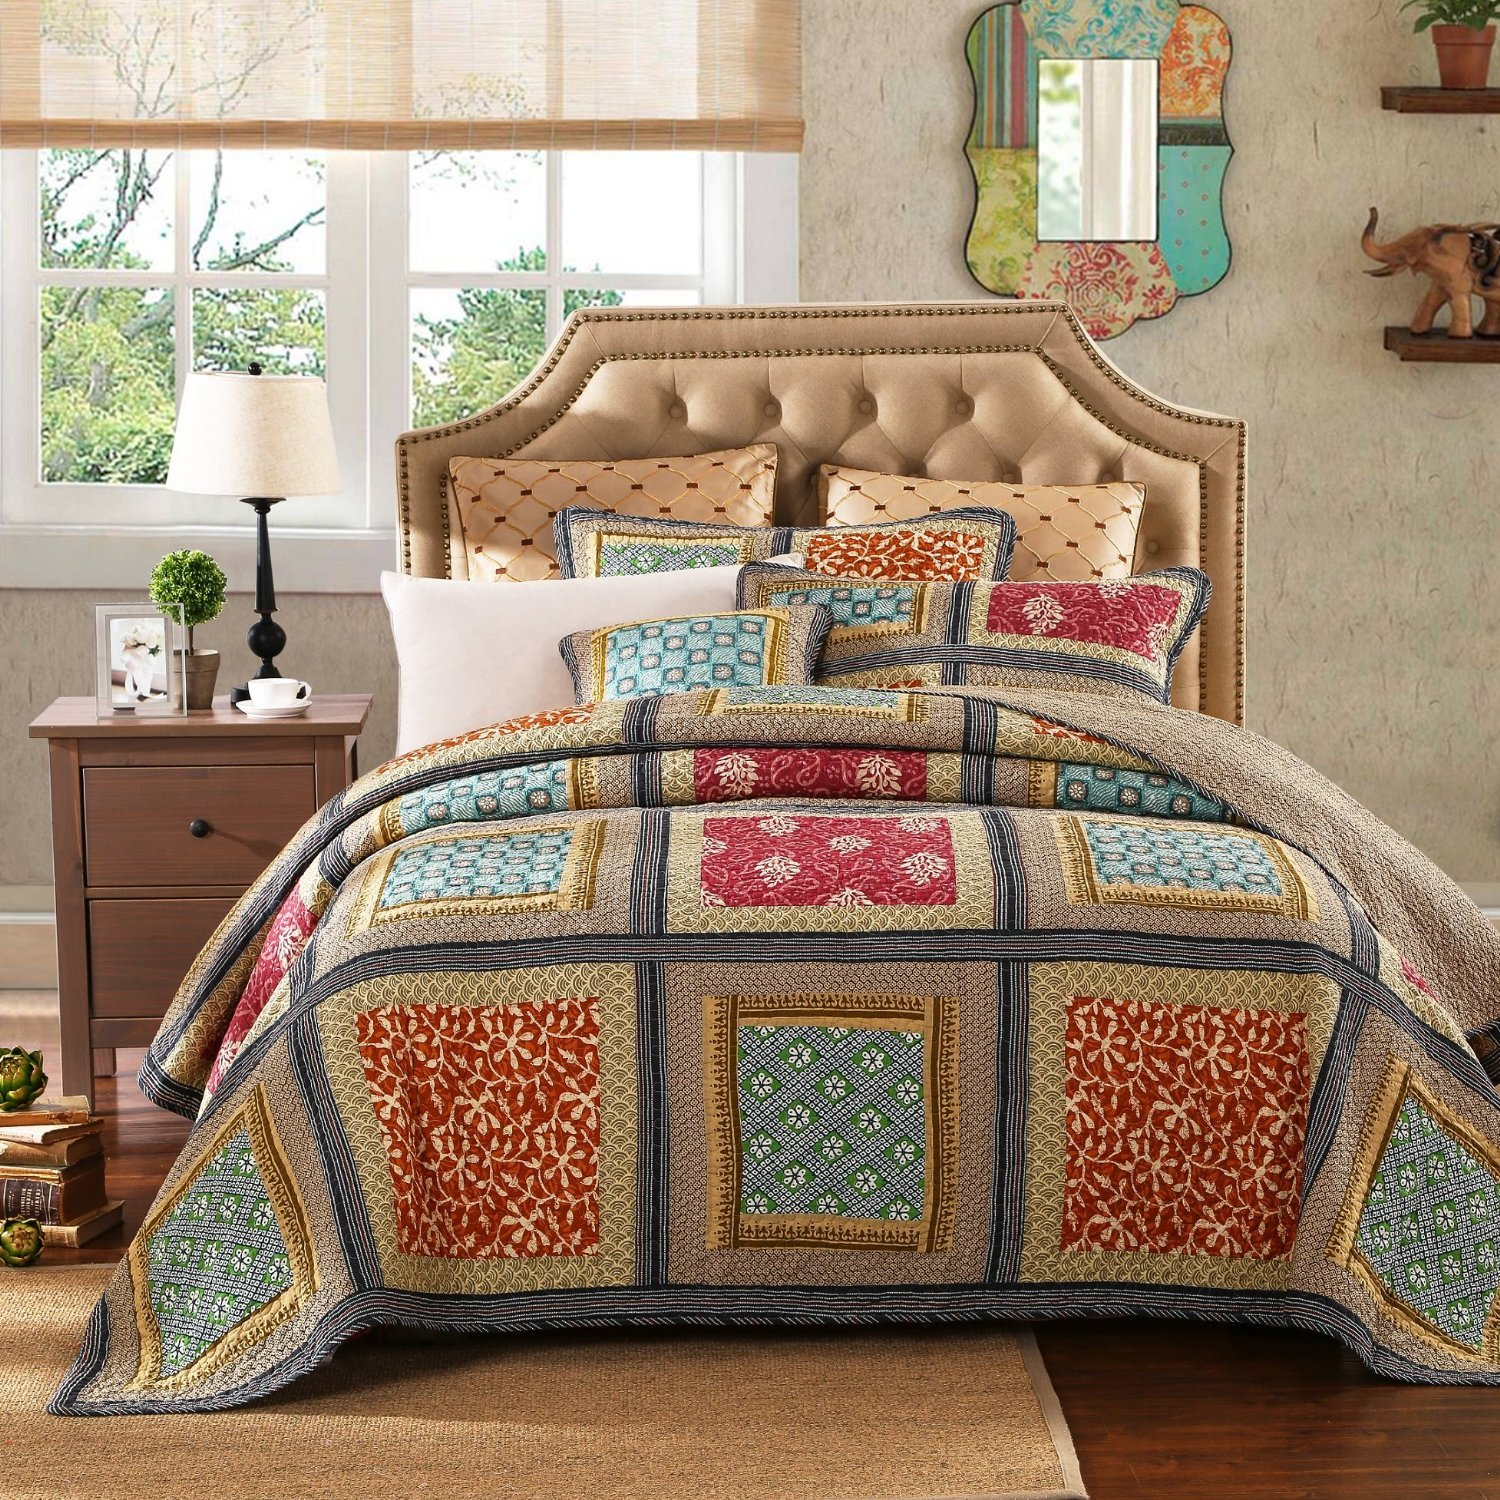 pastel bedspread coverlet reversible quilt dada gardenia set amazon bright com dp bohemian quilted vibrant paisley frosted patchwork floral bedding cotton real